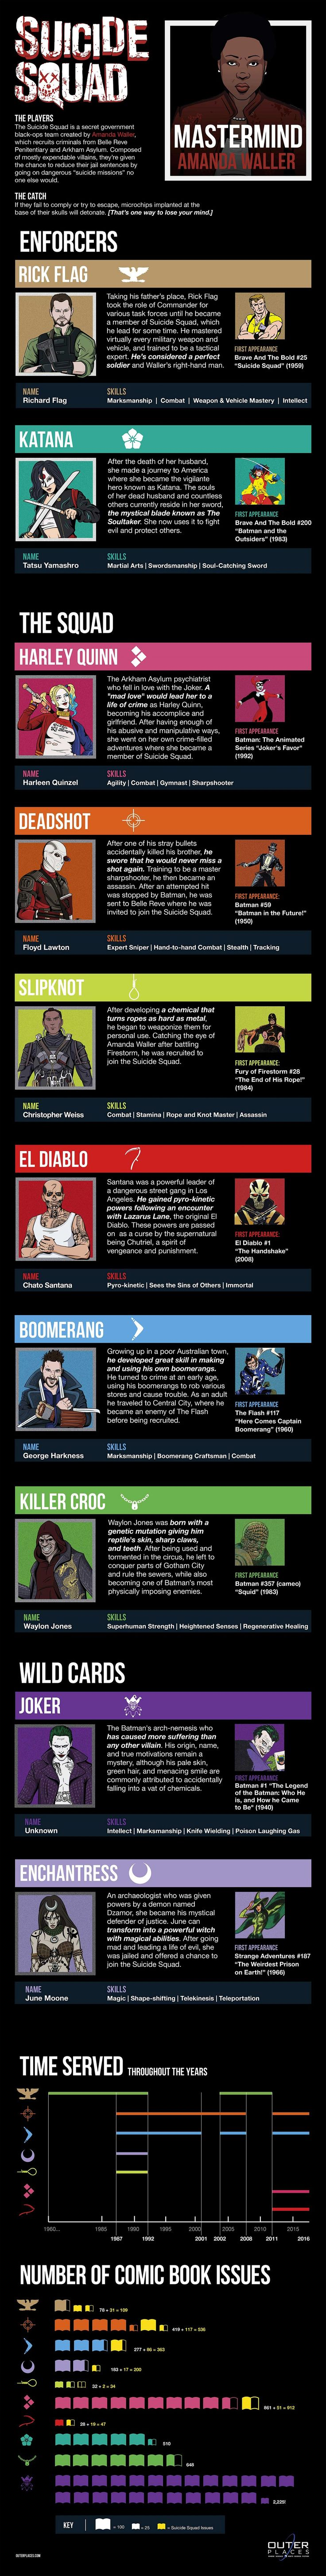 Suicide Squad #Infographic #Entertainment #Movie